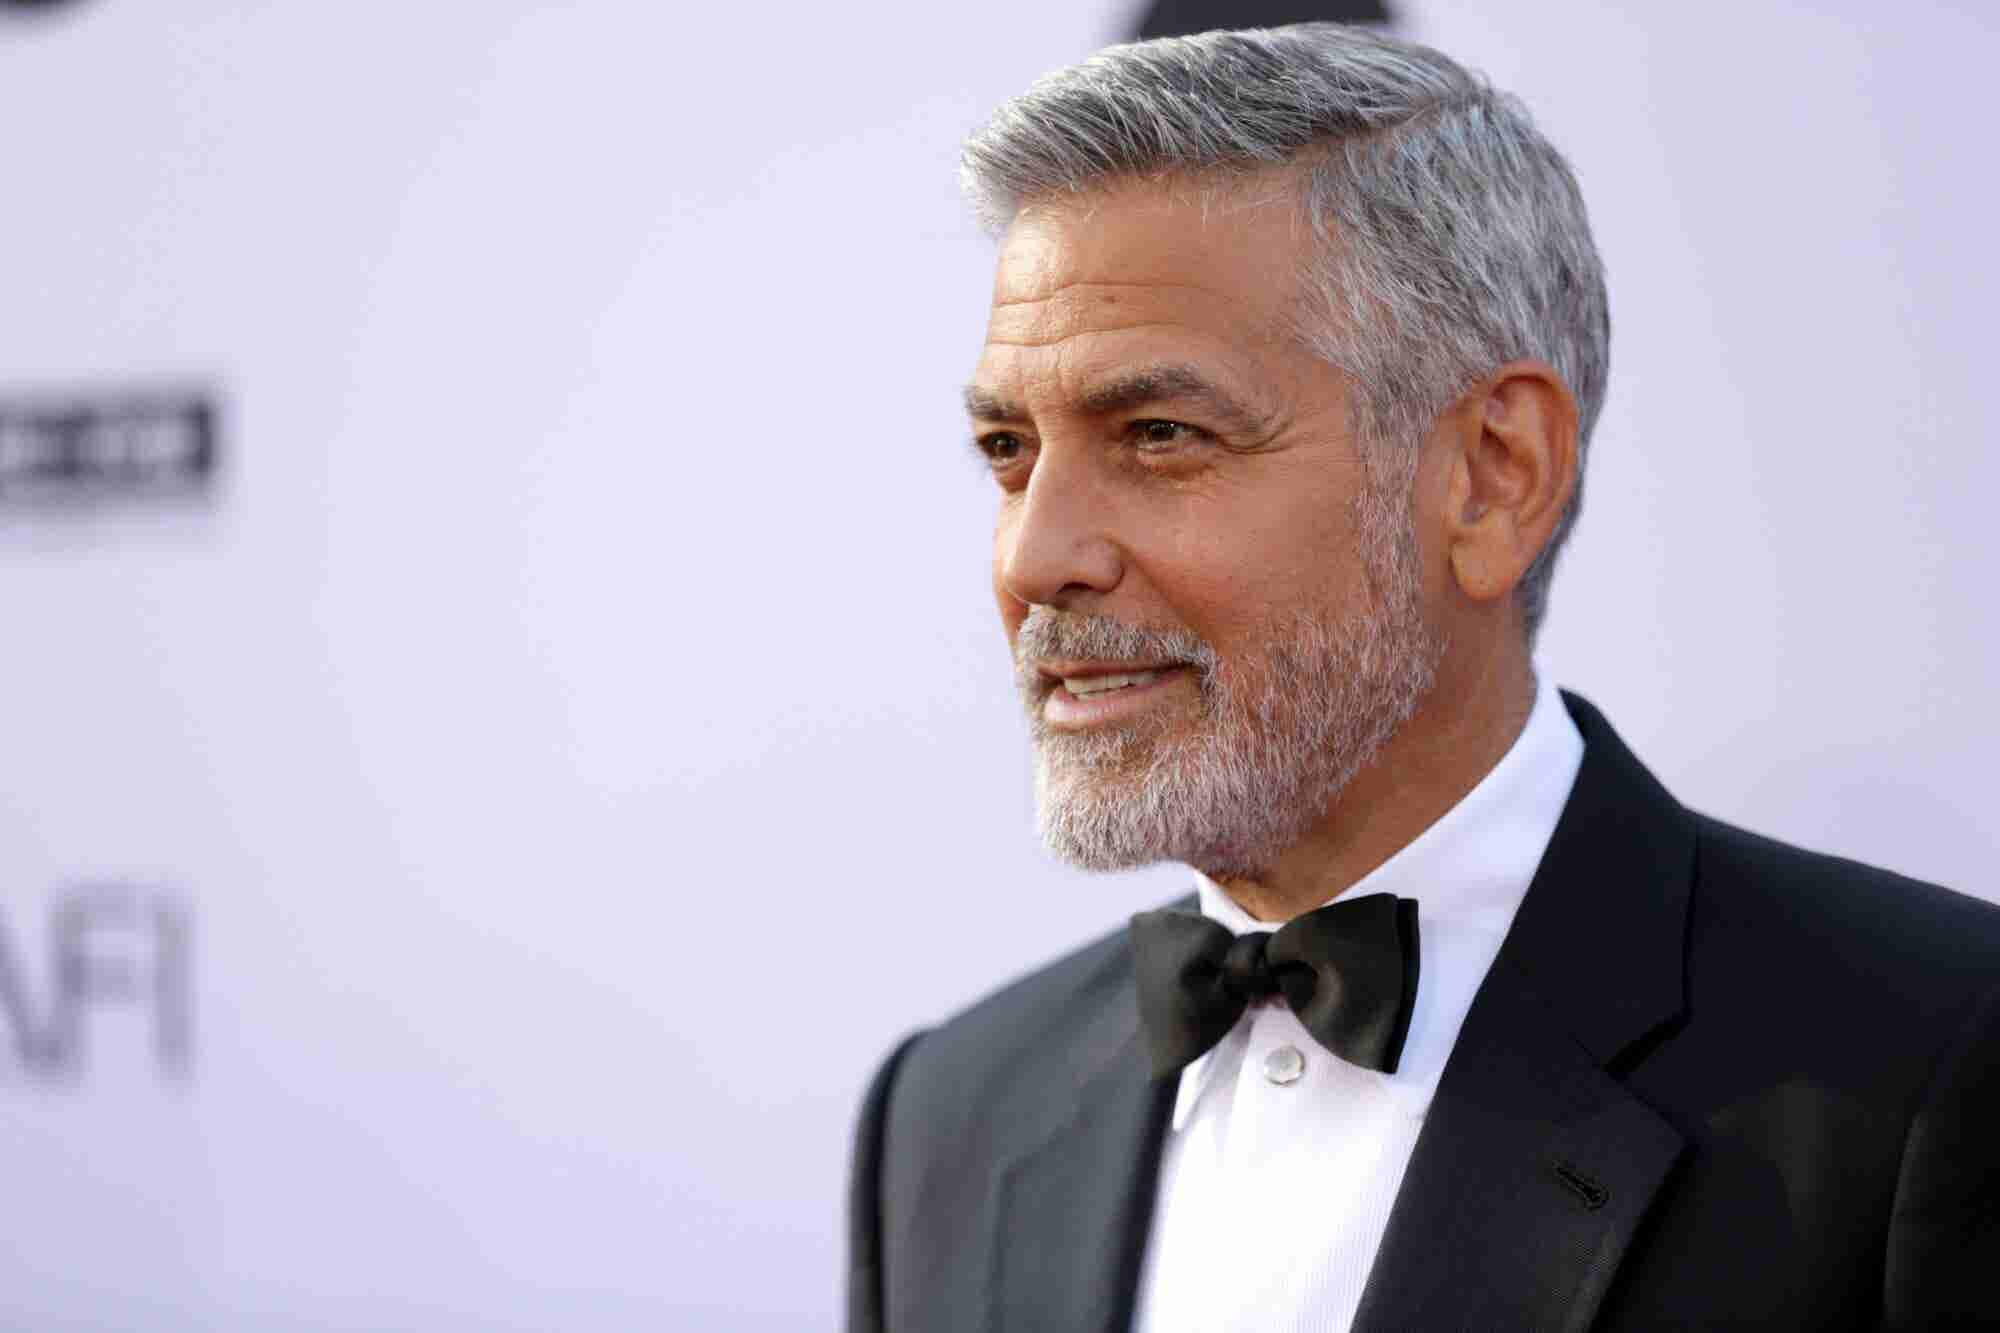 8 Inspirational George Clooney Quotes on Leadership, Failure and Stayi...